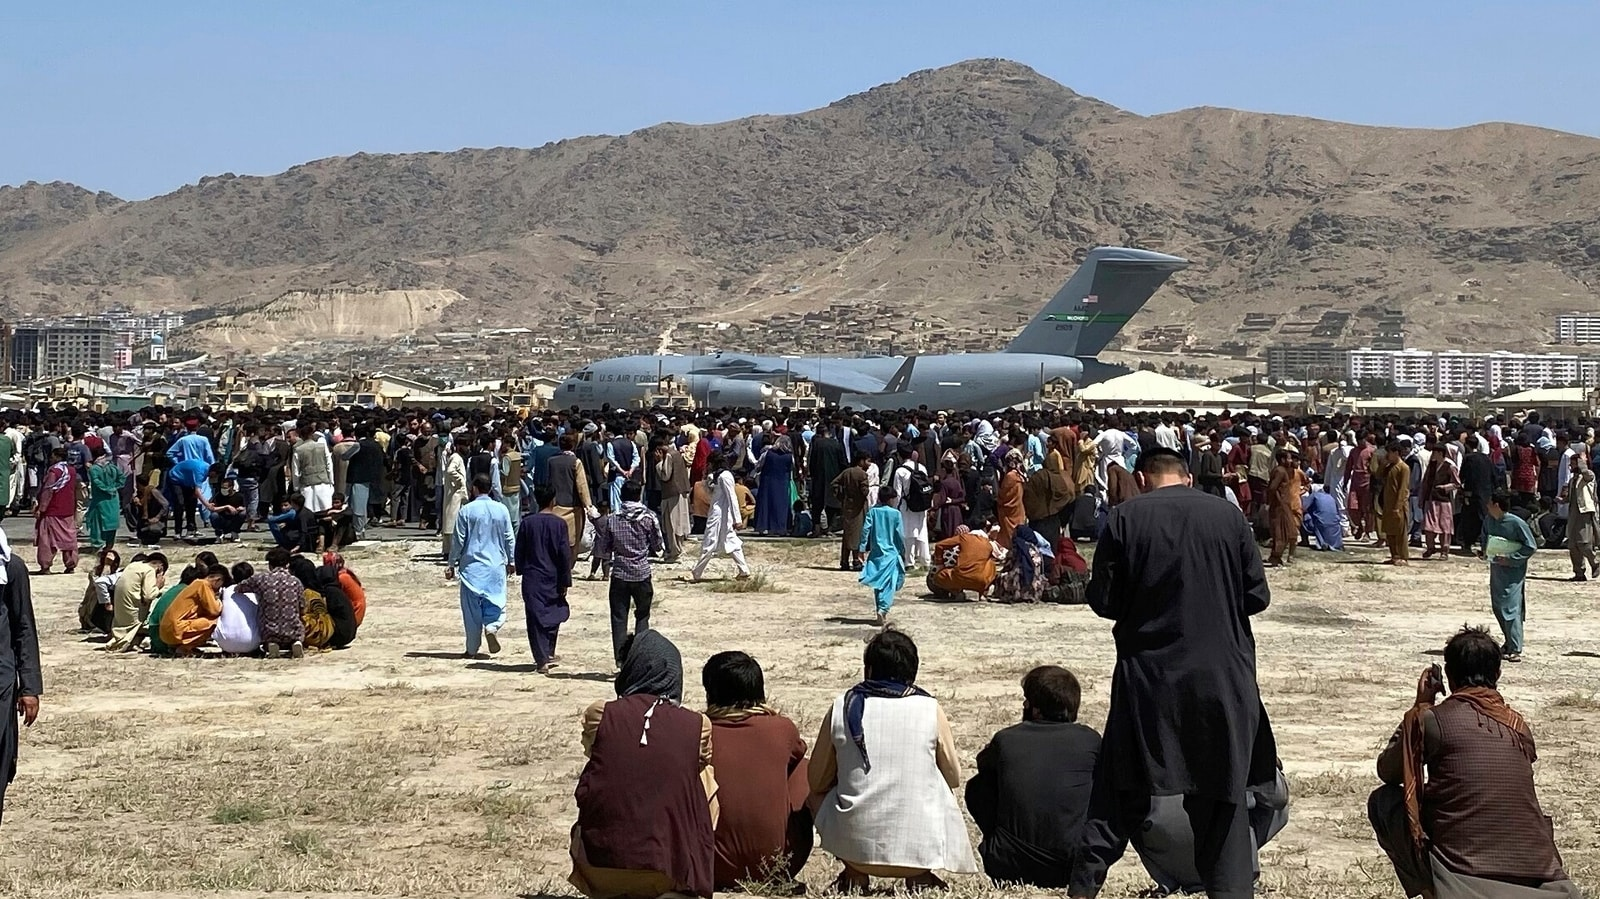 Afghan crisis: Satellite images reveal the chaos at Kabul airport | World News - Hindustan Times